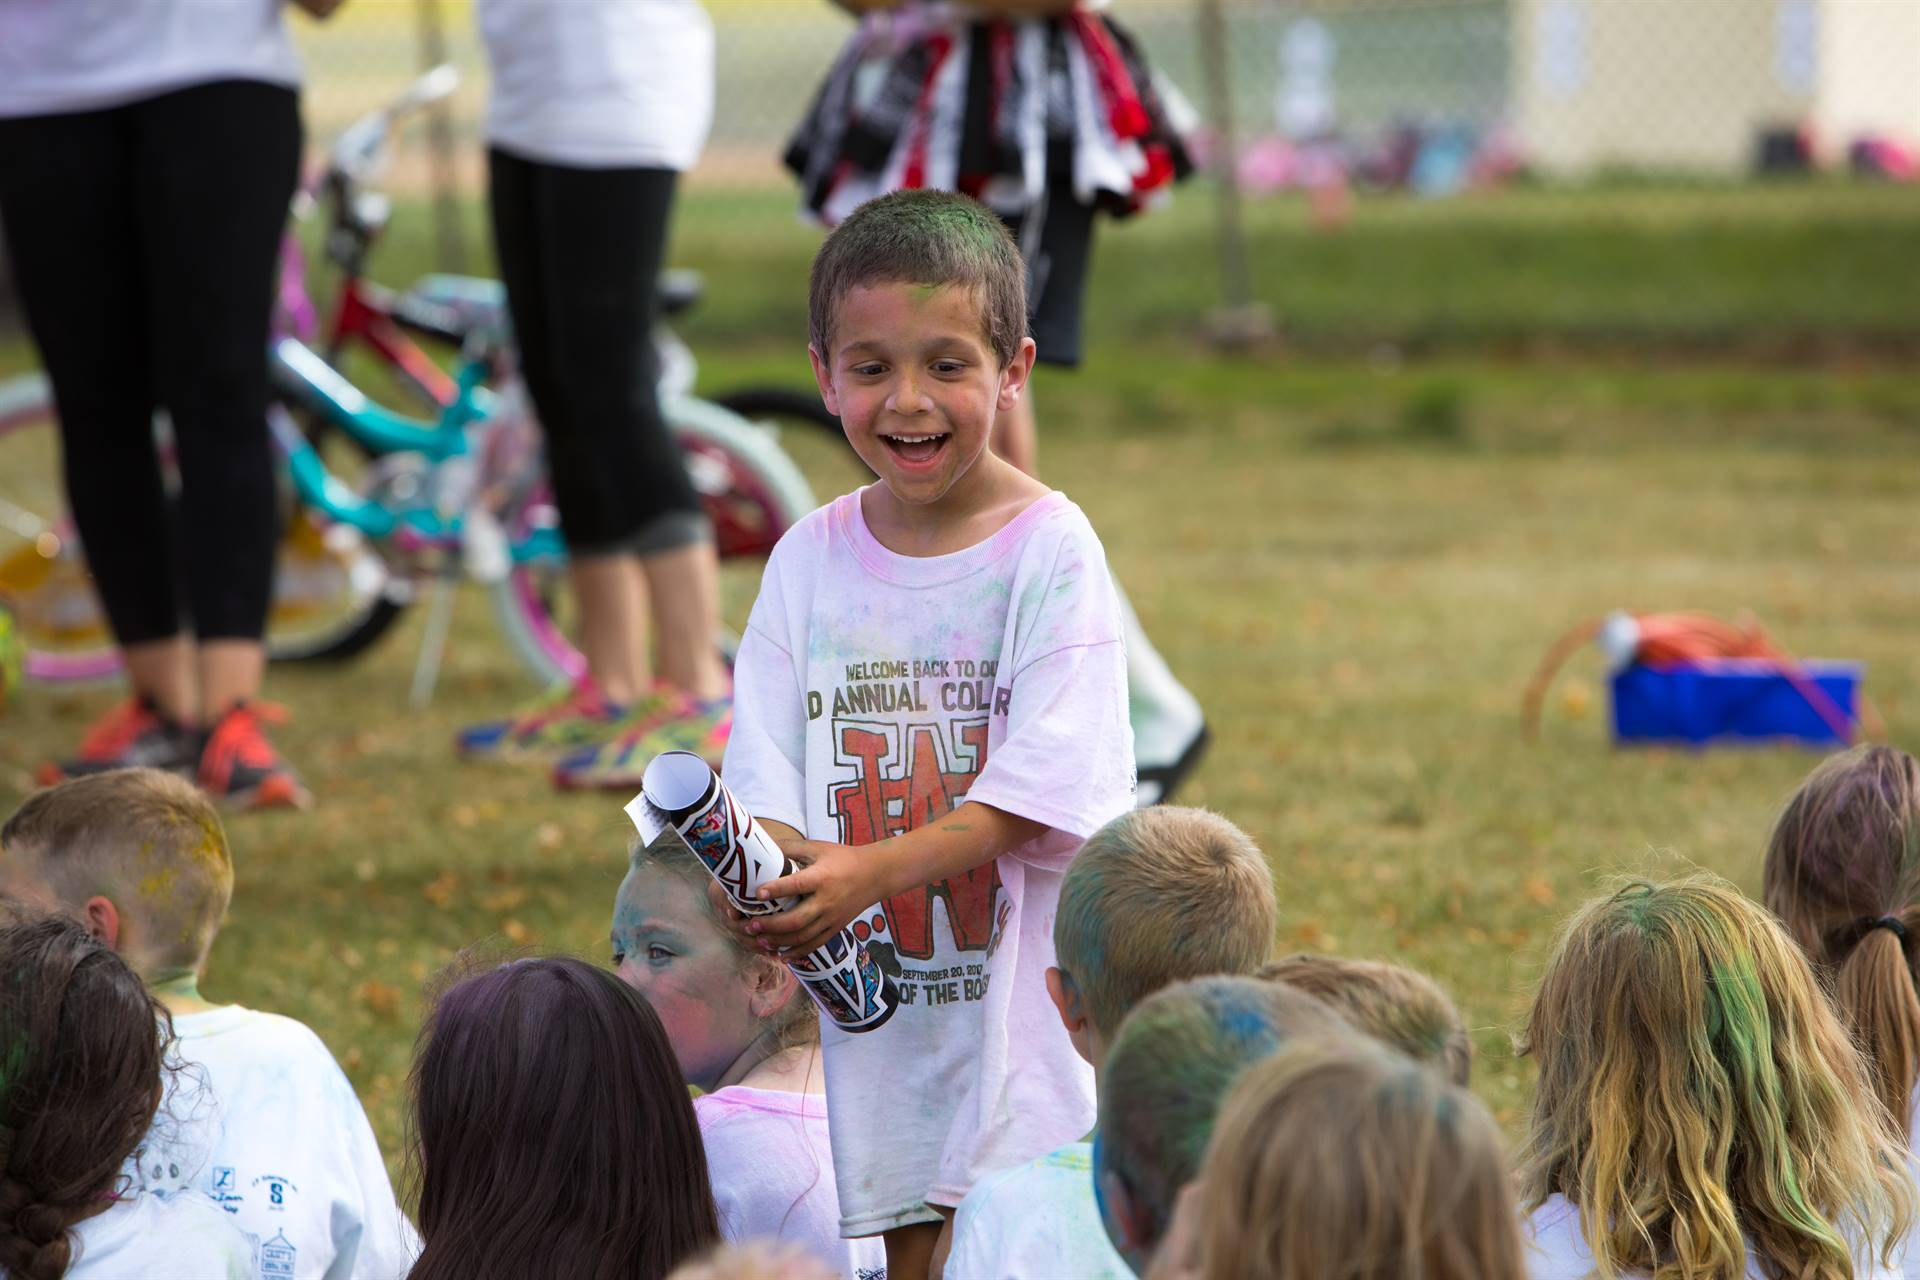 Boy with prize at color run